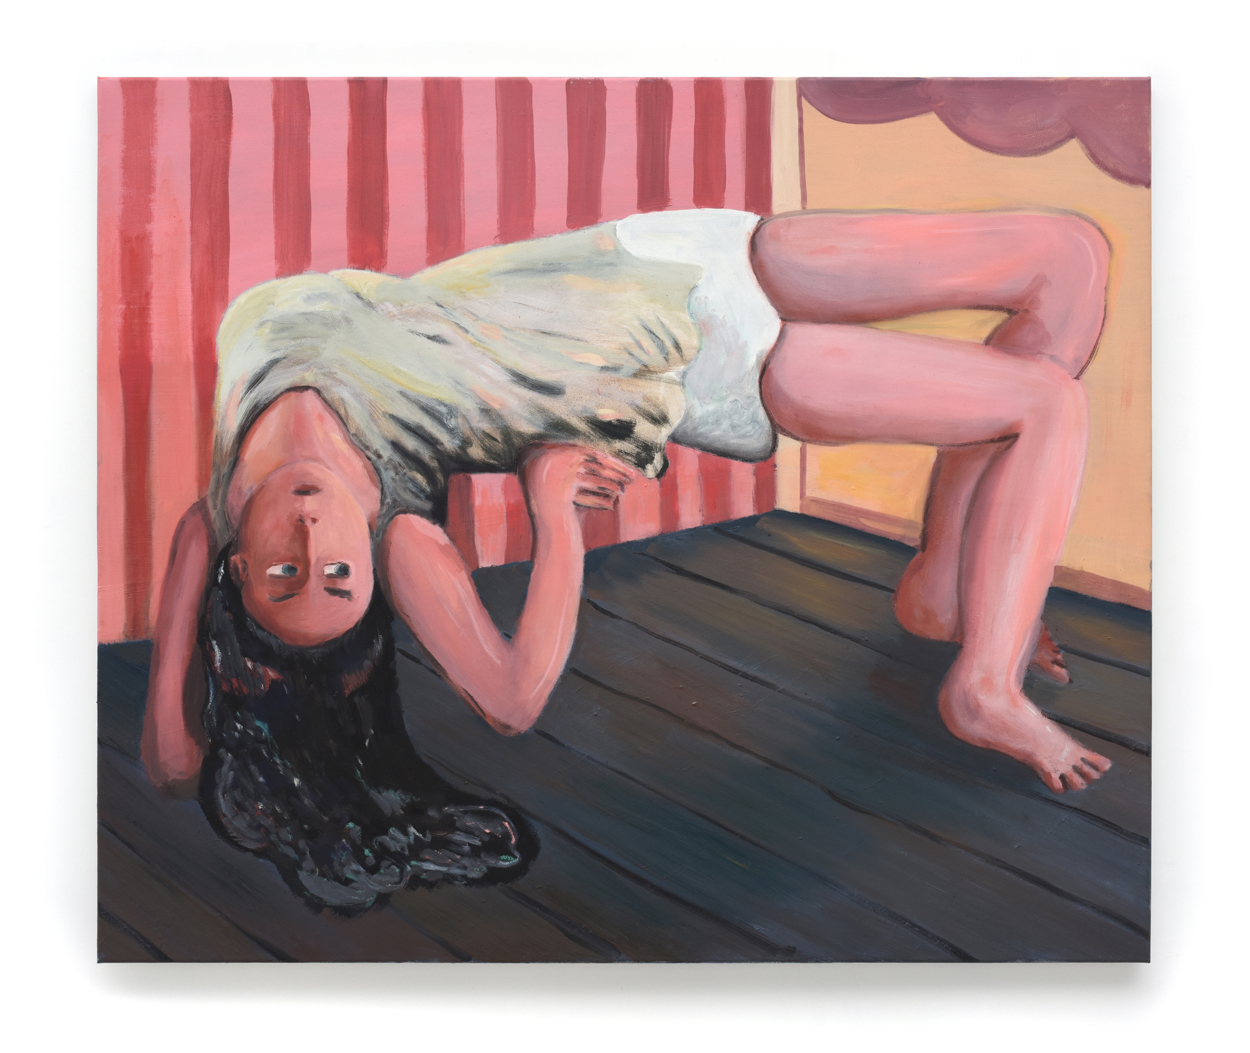 DECLERCQ - This_is_what_she_does_2019_100x120cm